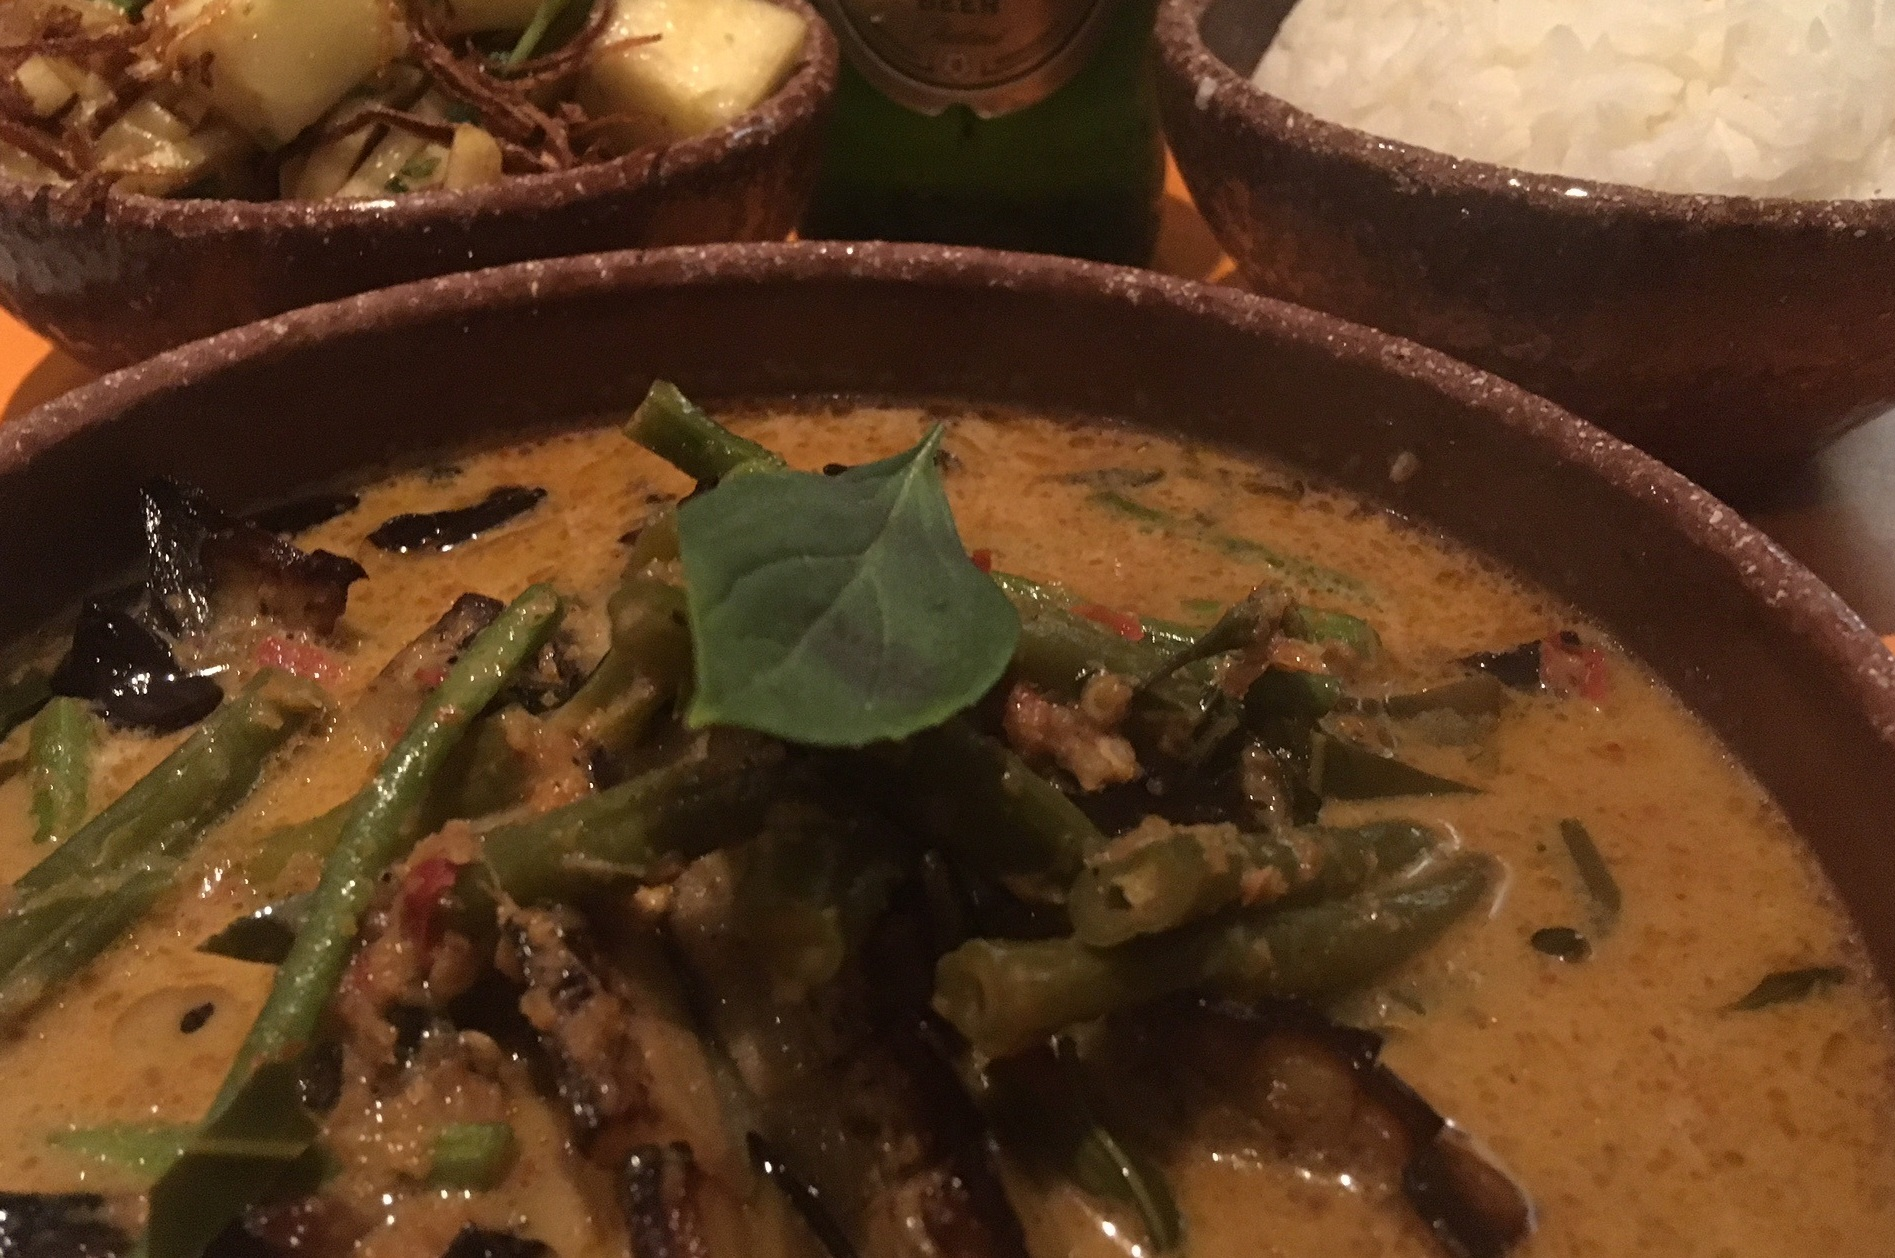 The simply named aubergine curry at Oli's Thai served with an apple salad and rice